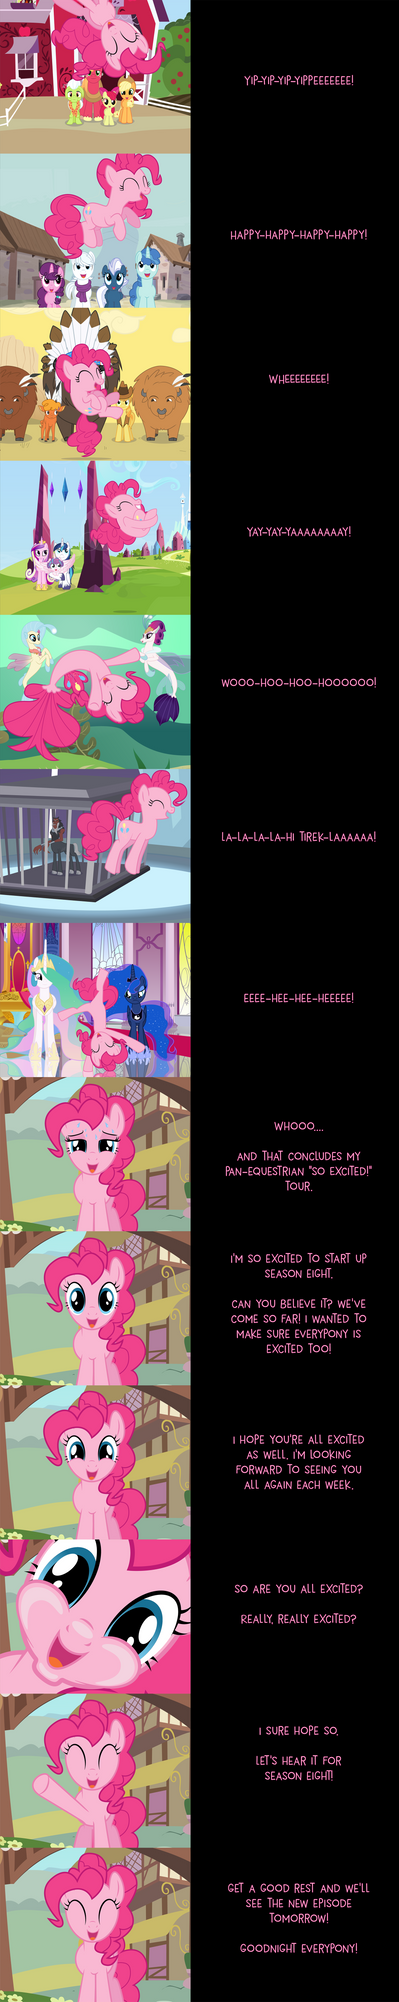 Pinkie Pie Says Goodnight: Grand Tour by MLP-Silver-Quill